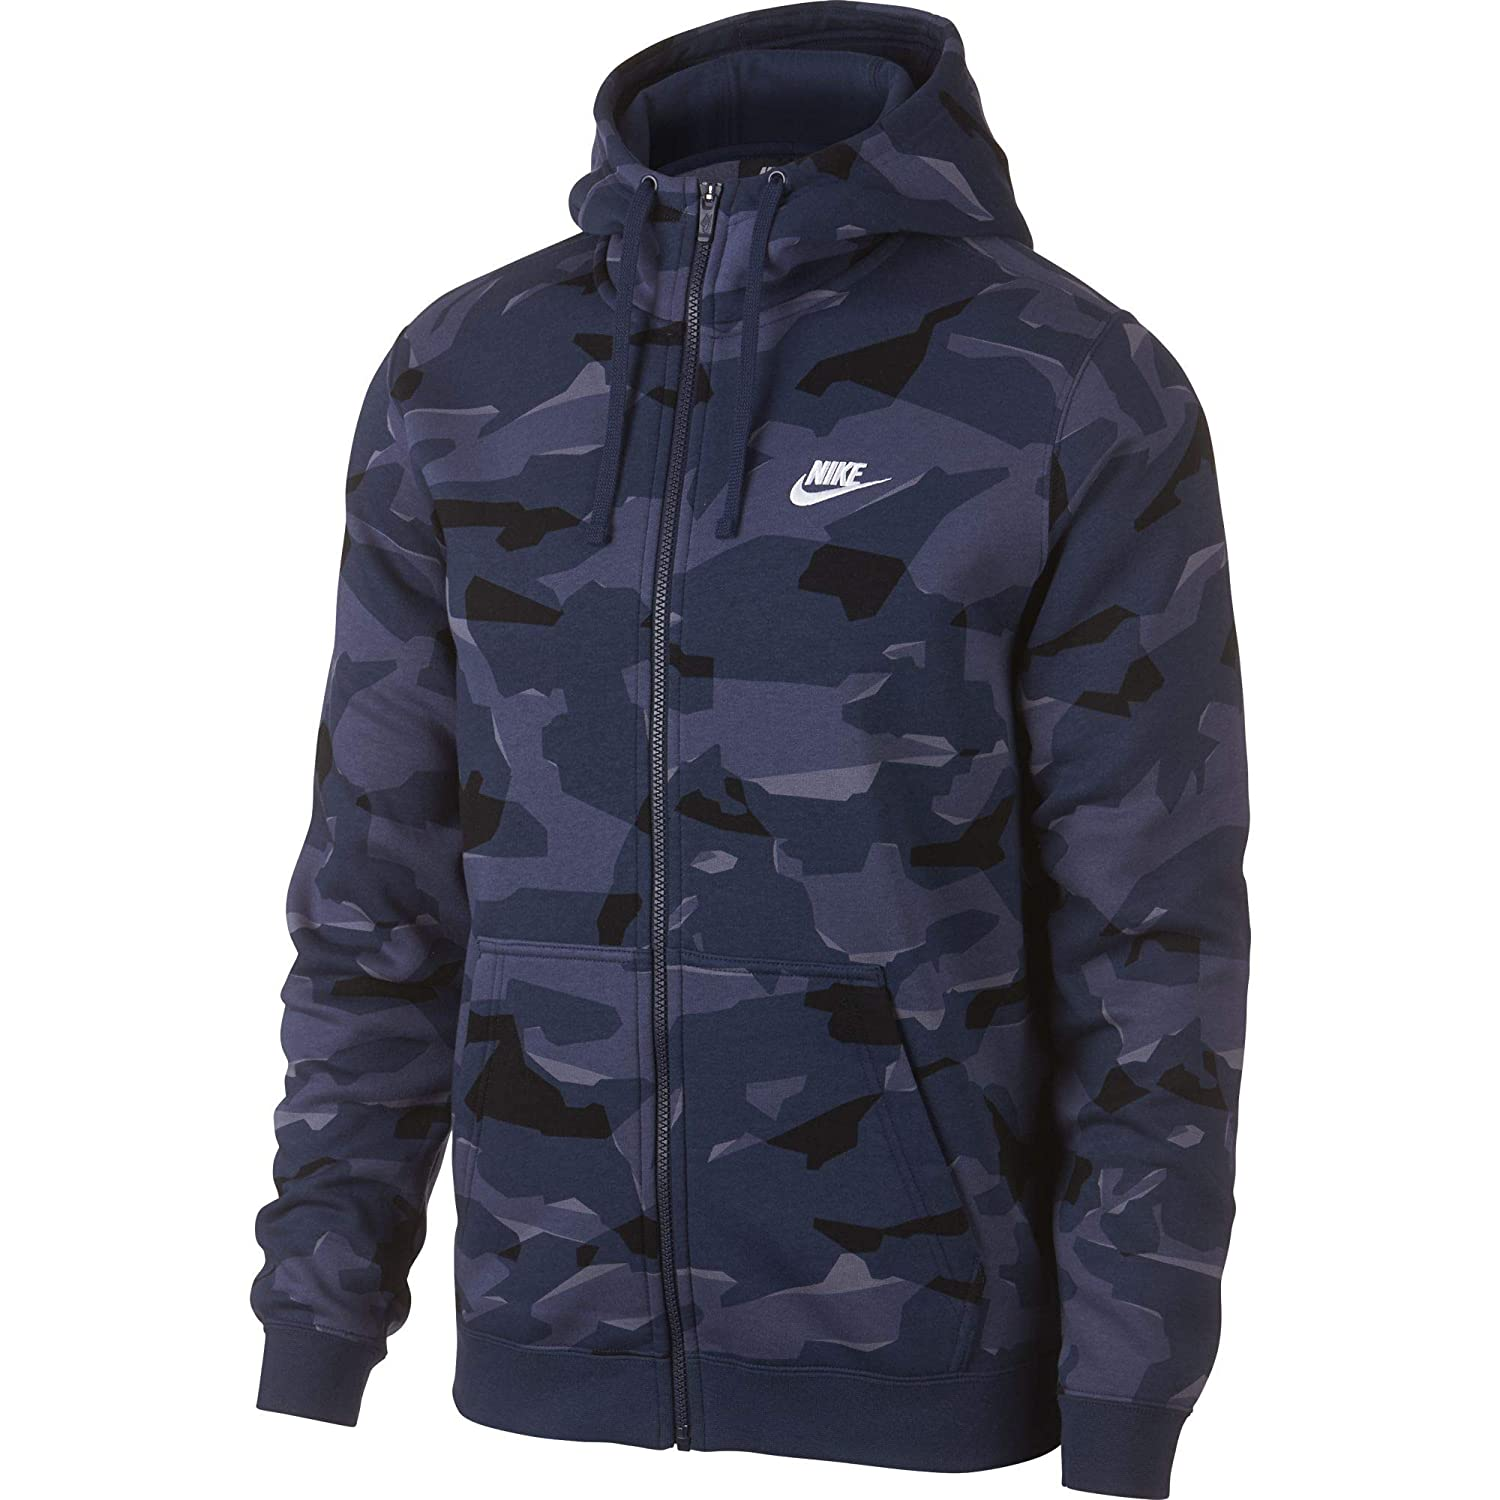 factory outlet cheap prices cute NIKE Mens Club Camo Basketball Full Zip Hoodie